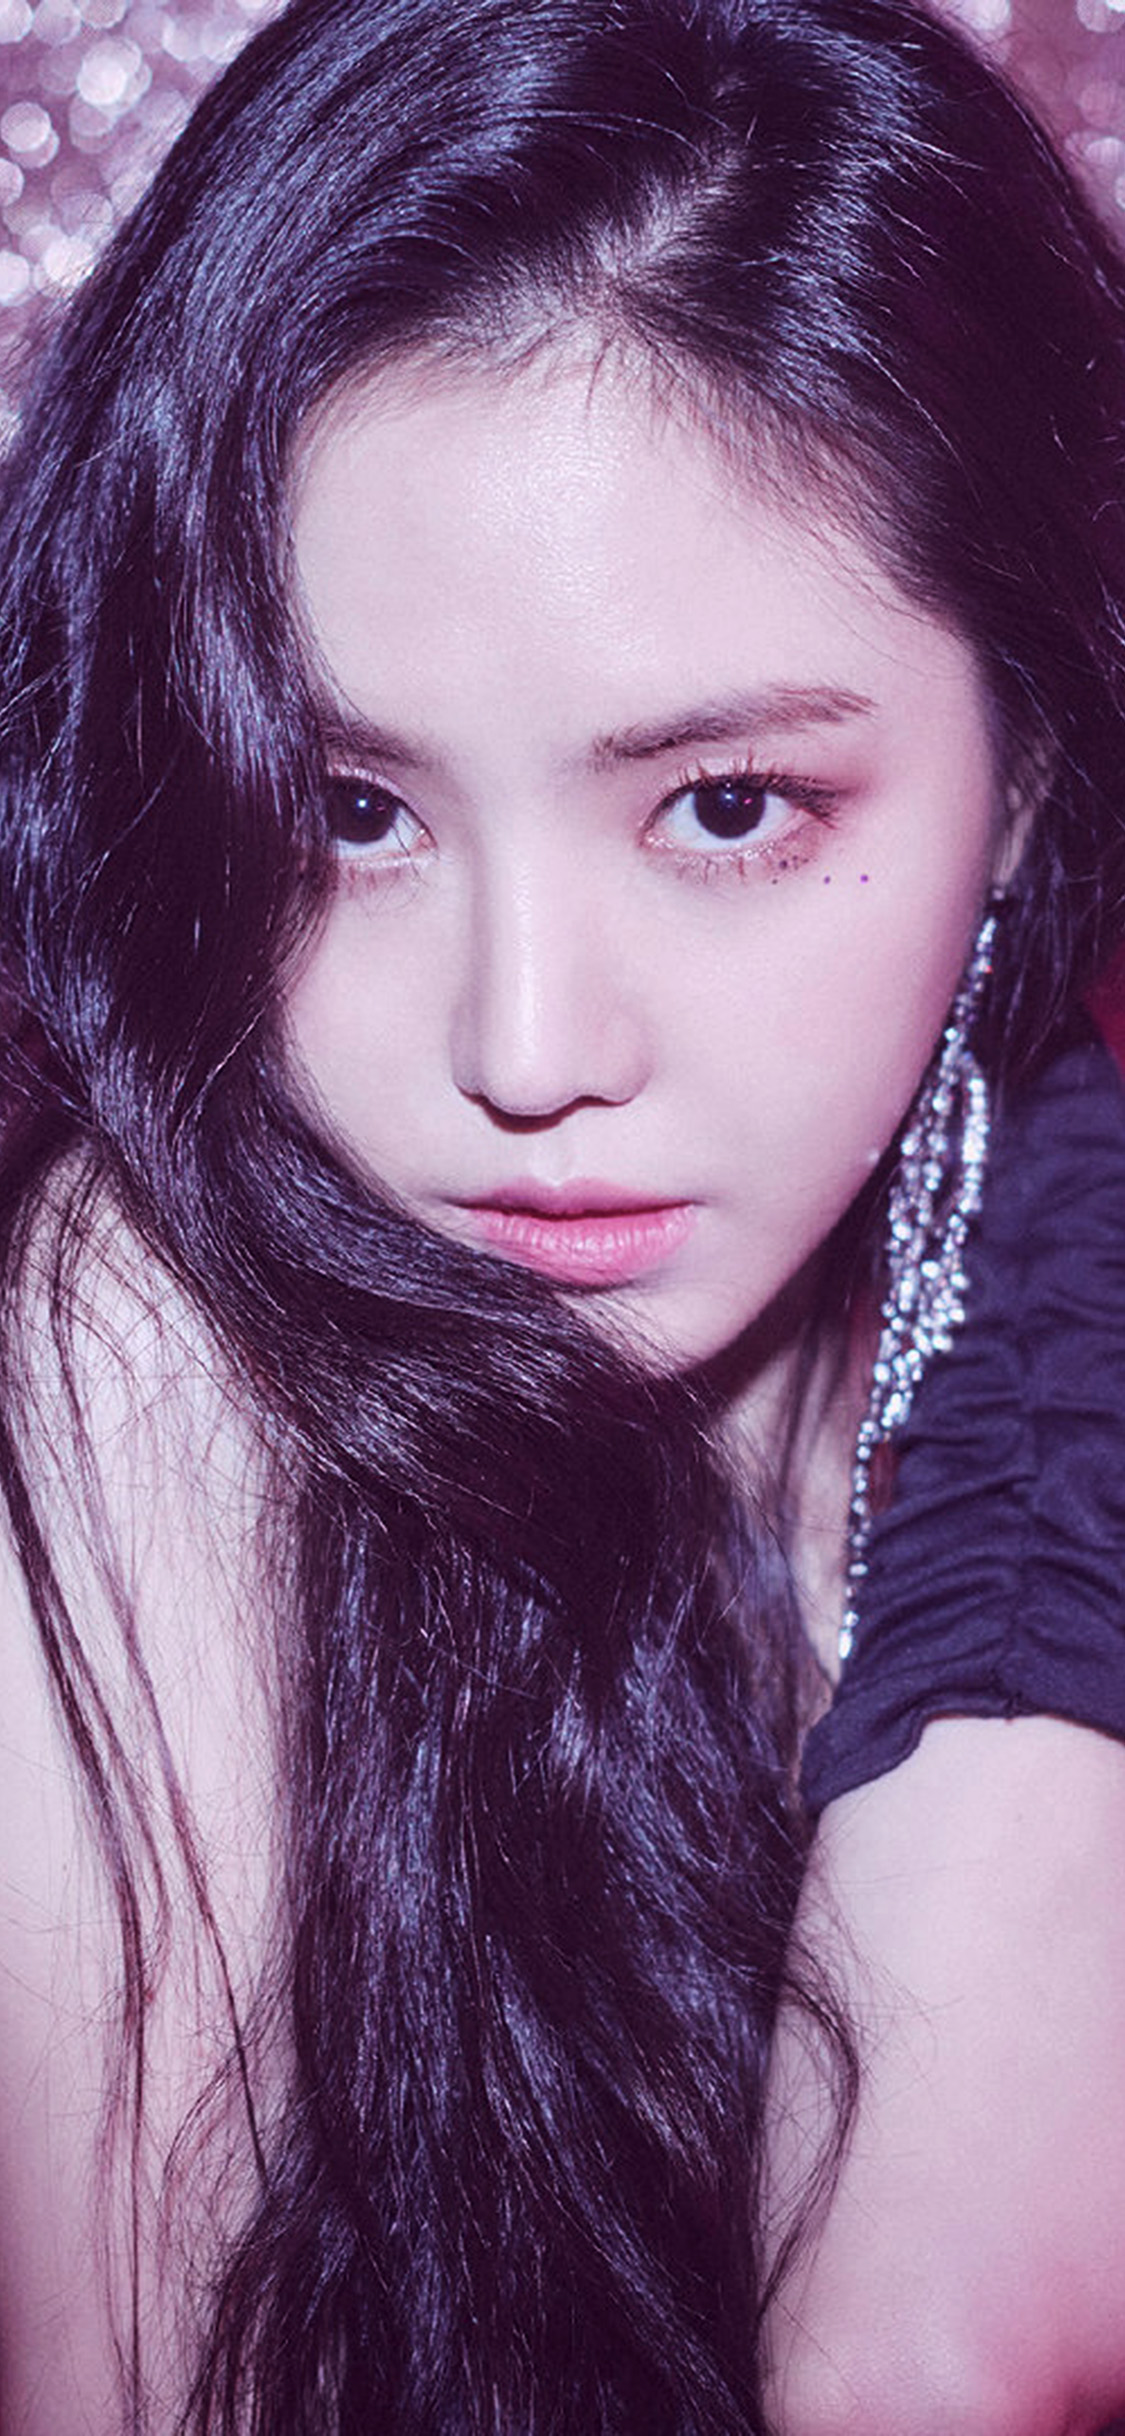 iPhonexpapers.com-Apple-iPhone-wallpaper-hr54-kpop-girl-pink-face-bling